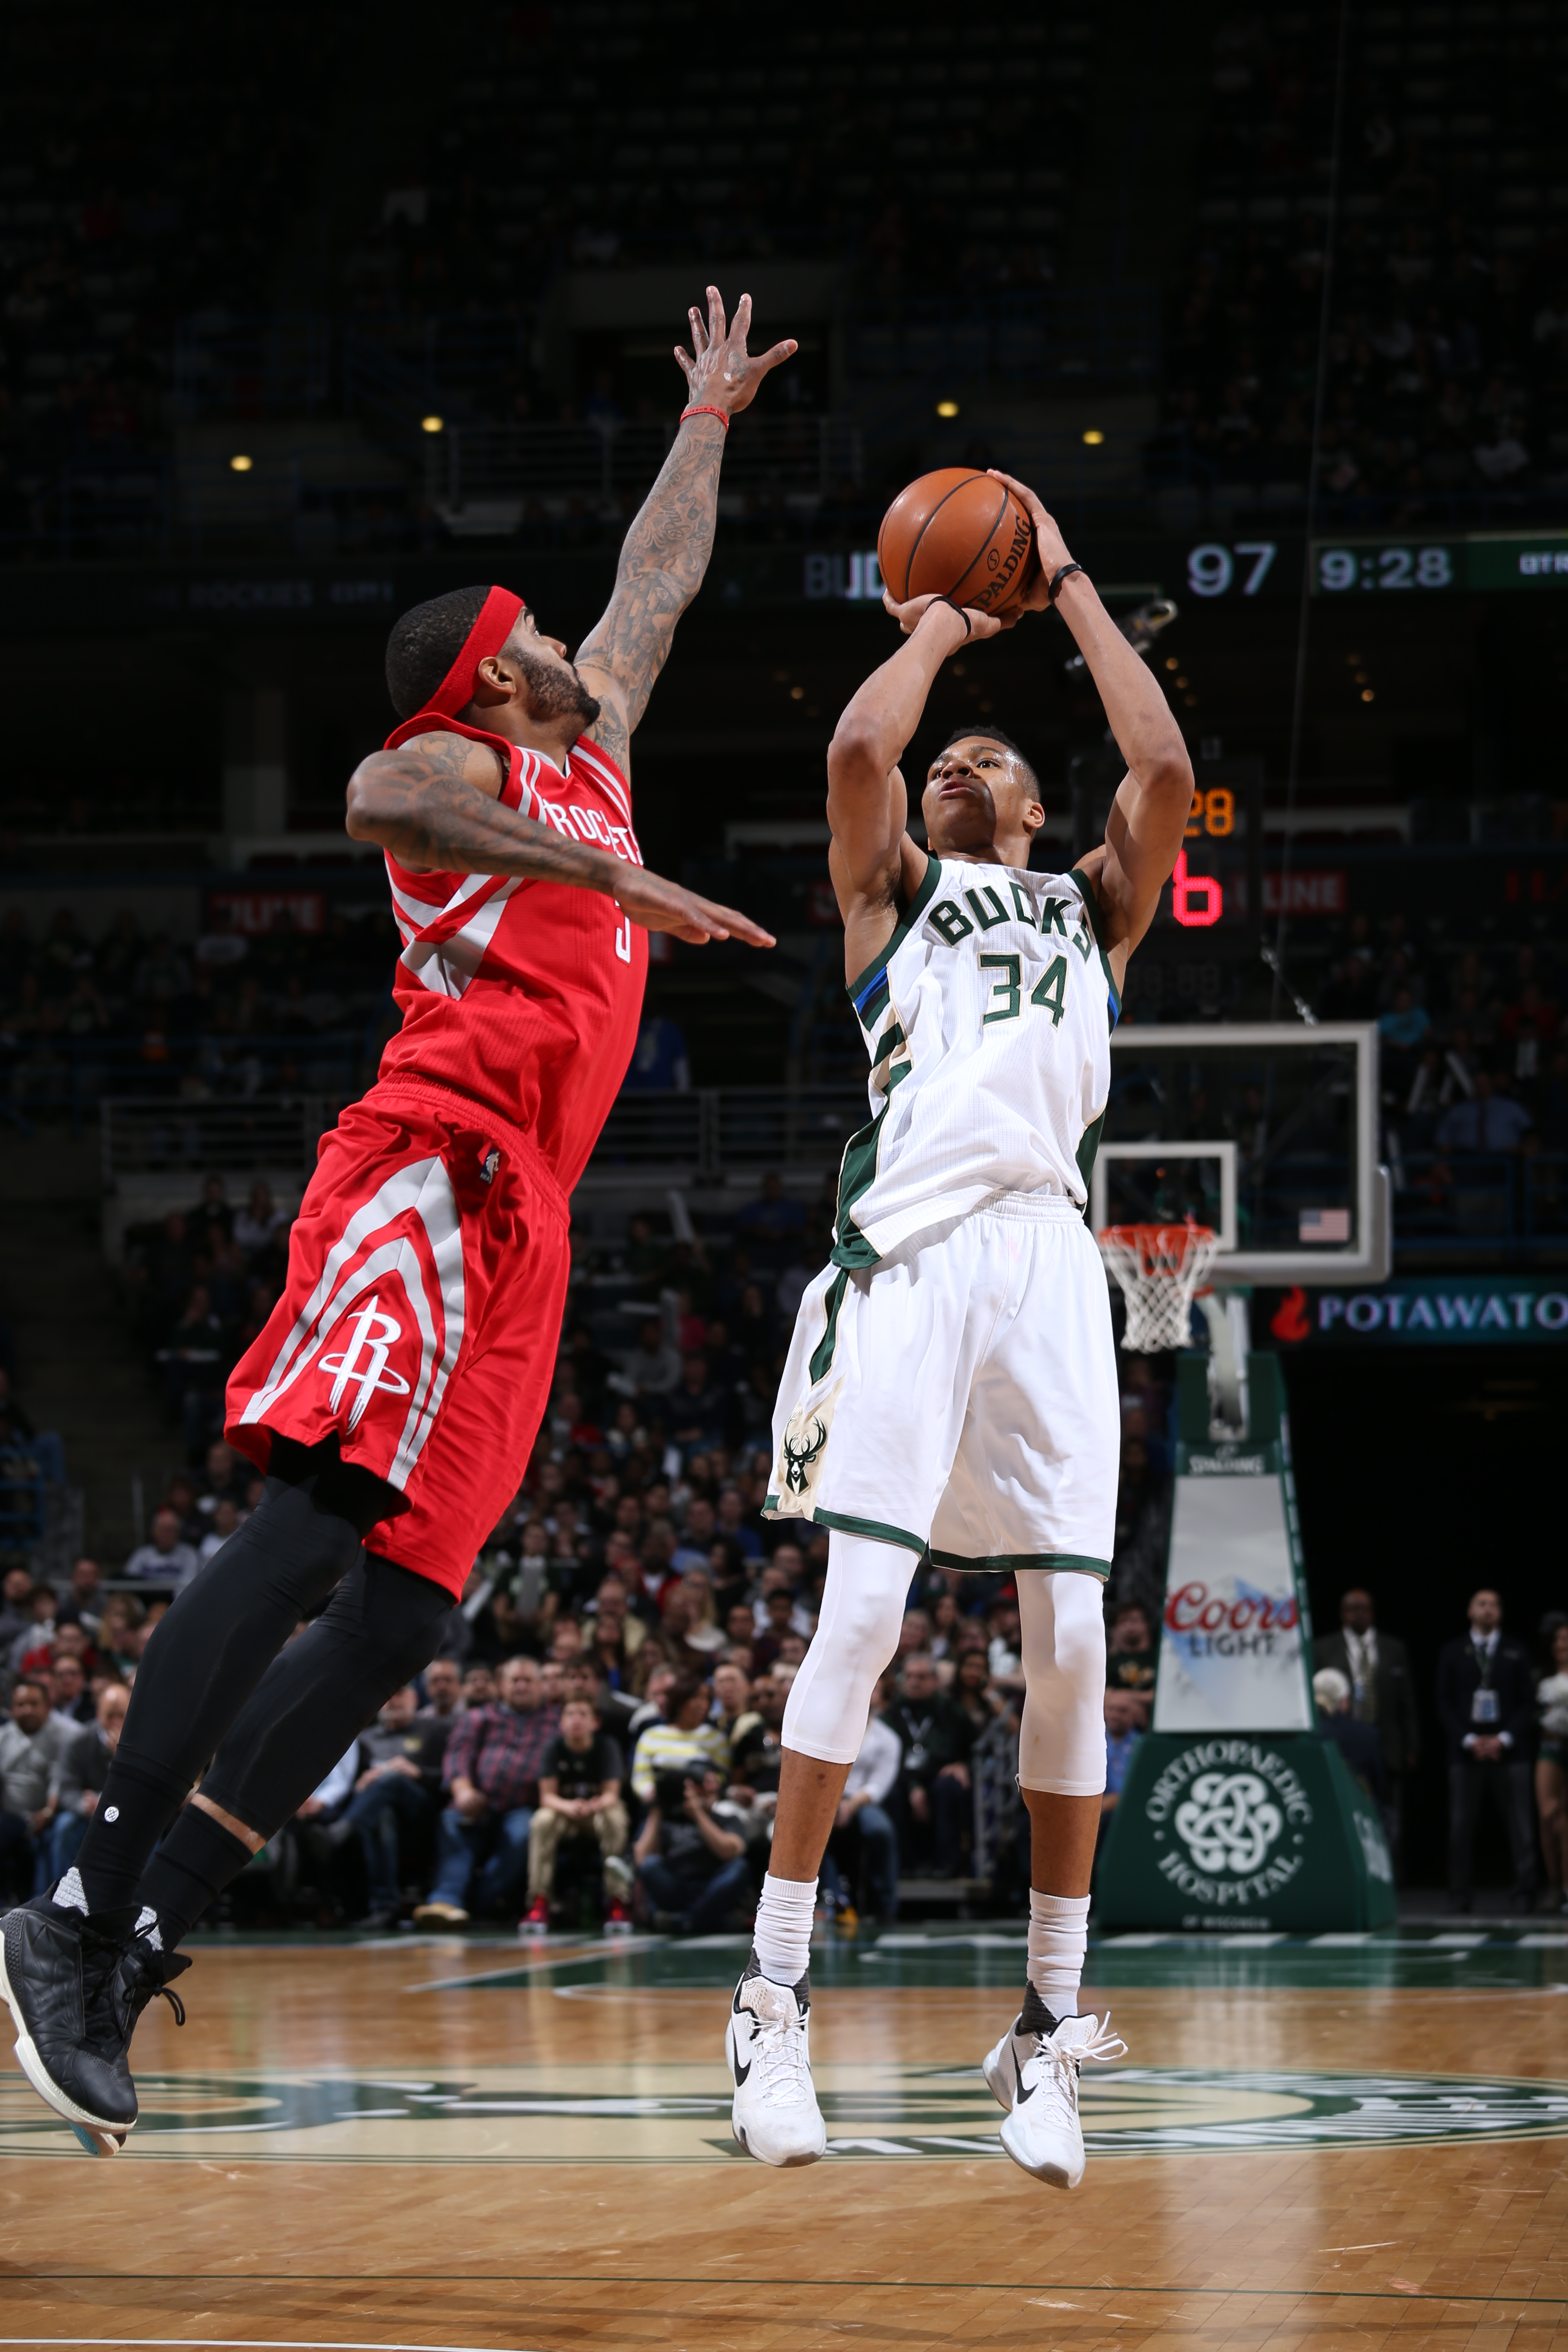 MILWAUKEE, WI - FEBRUARY 29:  Giannis Antetokounmpo #34 of the Milwaukee Bucks shoots against Josh Smith #5 of the Houston Rockets on February 29, 2016 at the BMO Harris Bradley Center in Milwaukee, Wisconsin. (Photo by Gary Dineen/NBAE via Getty Images)